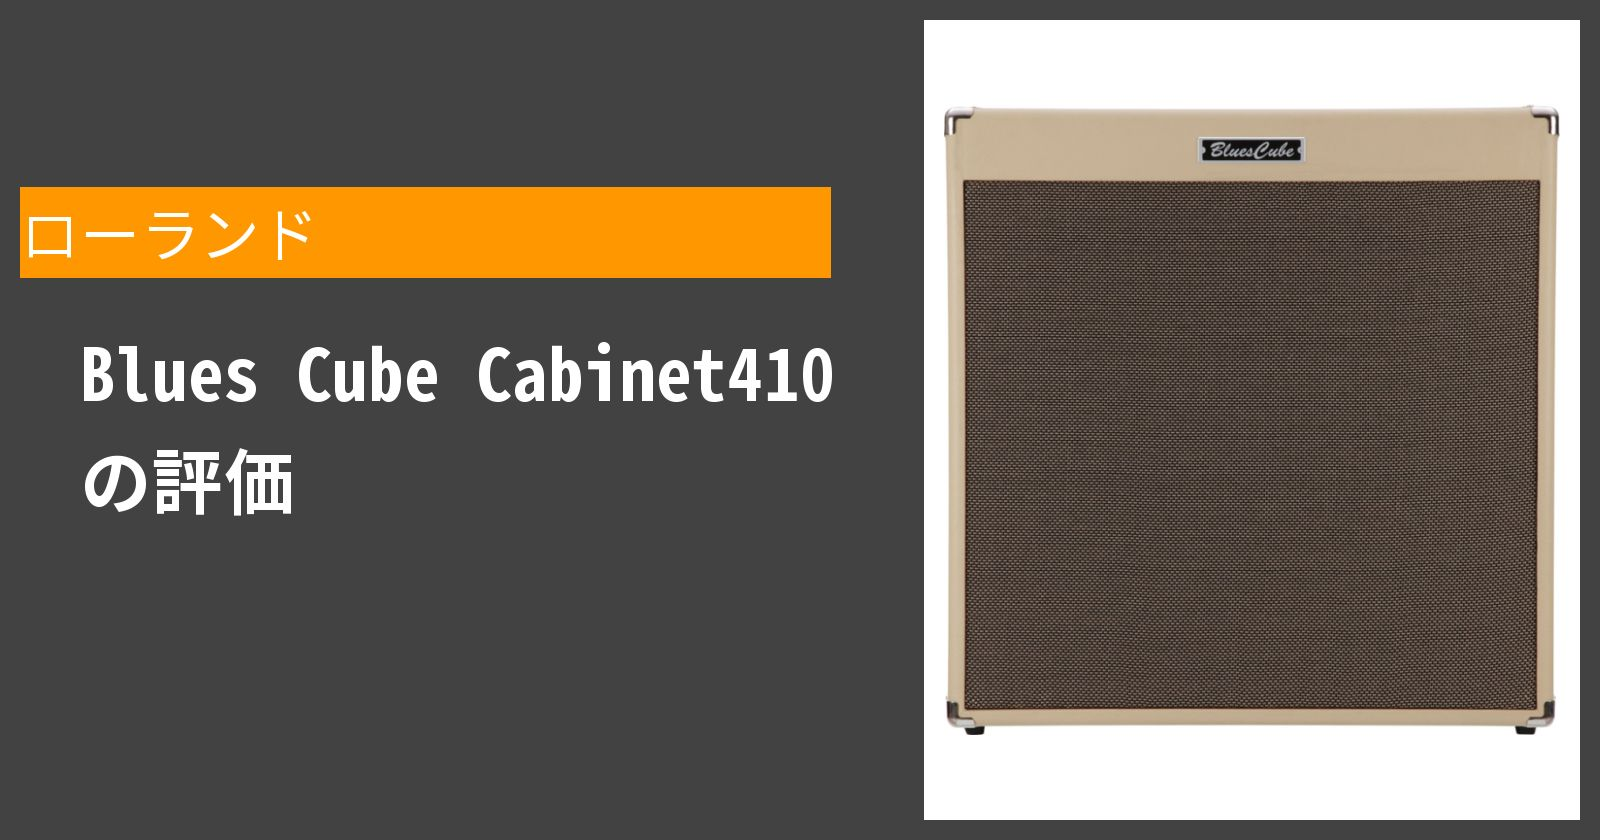 Blues Cube Cabinet410を徹底評価